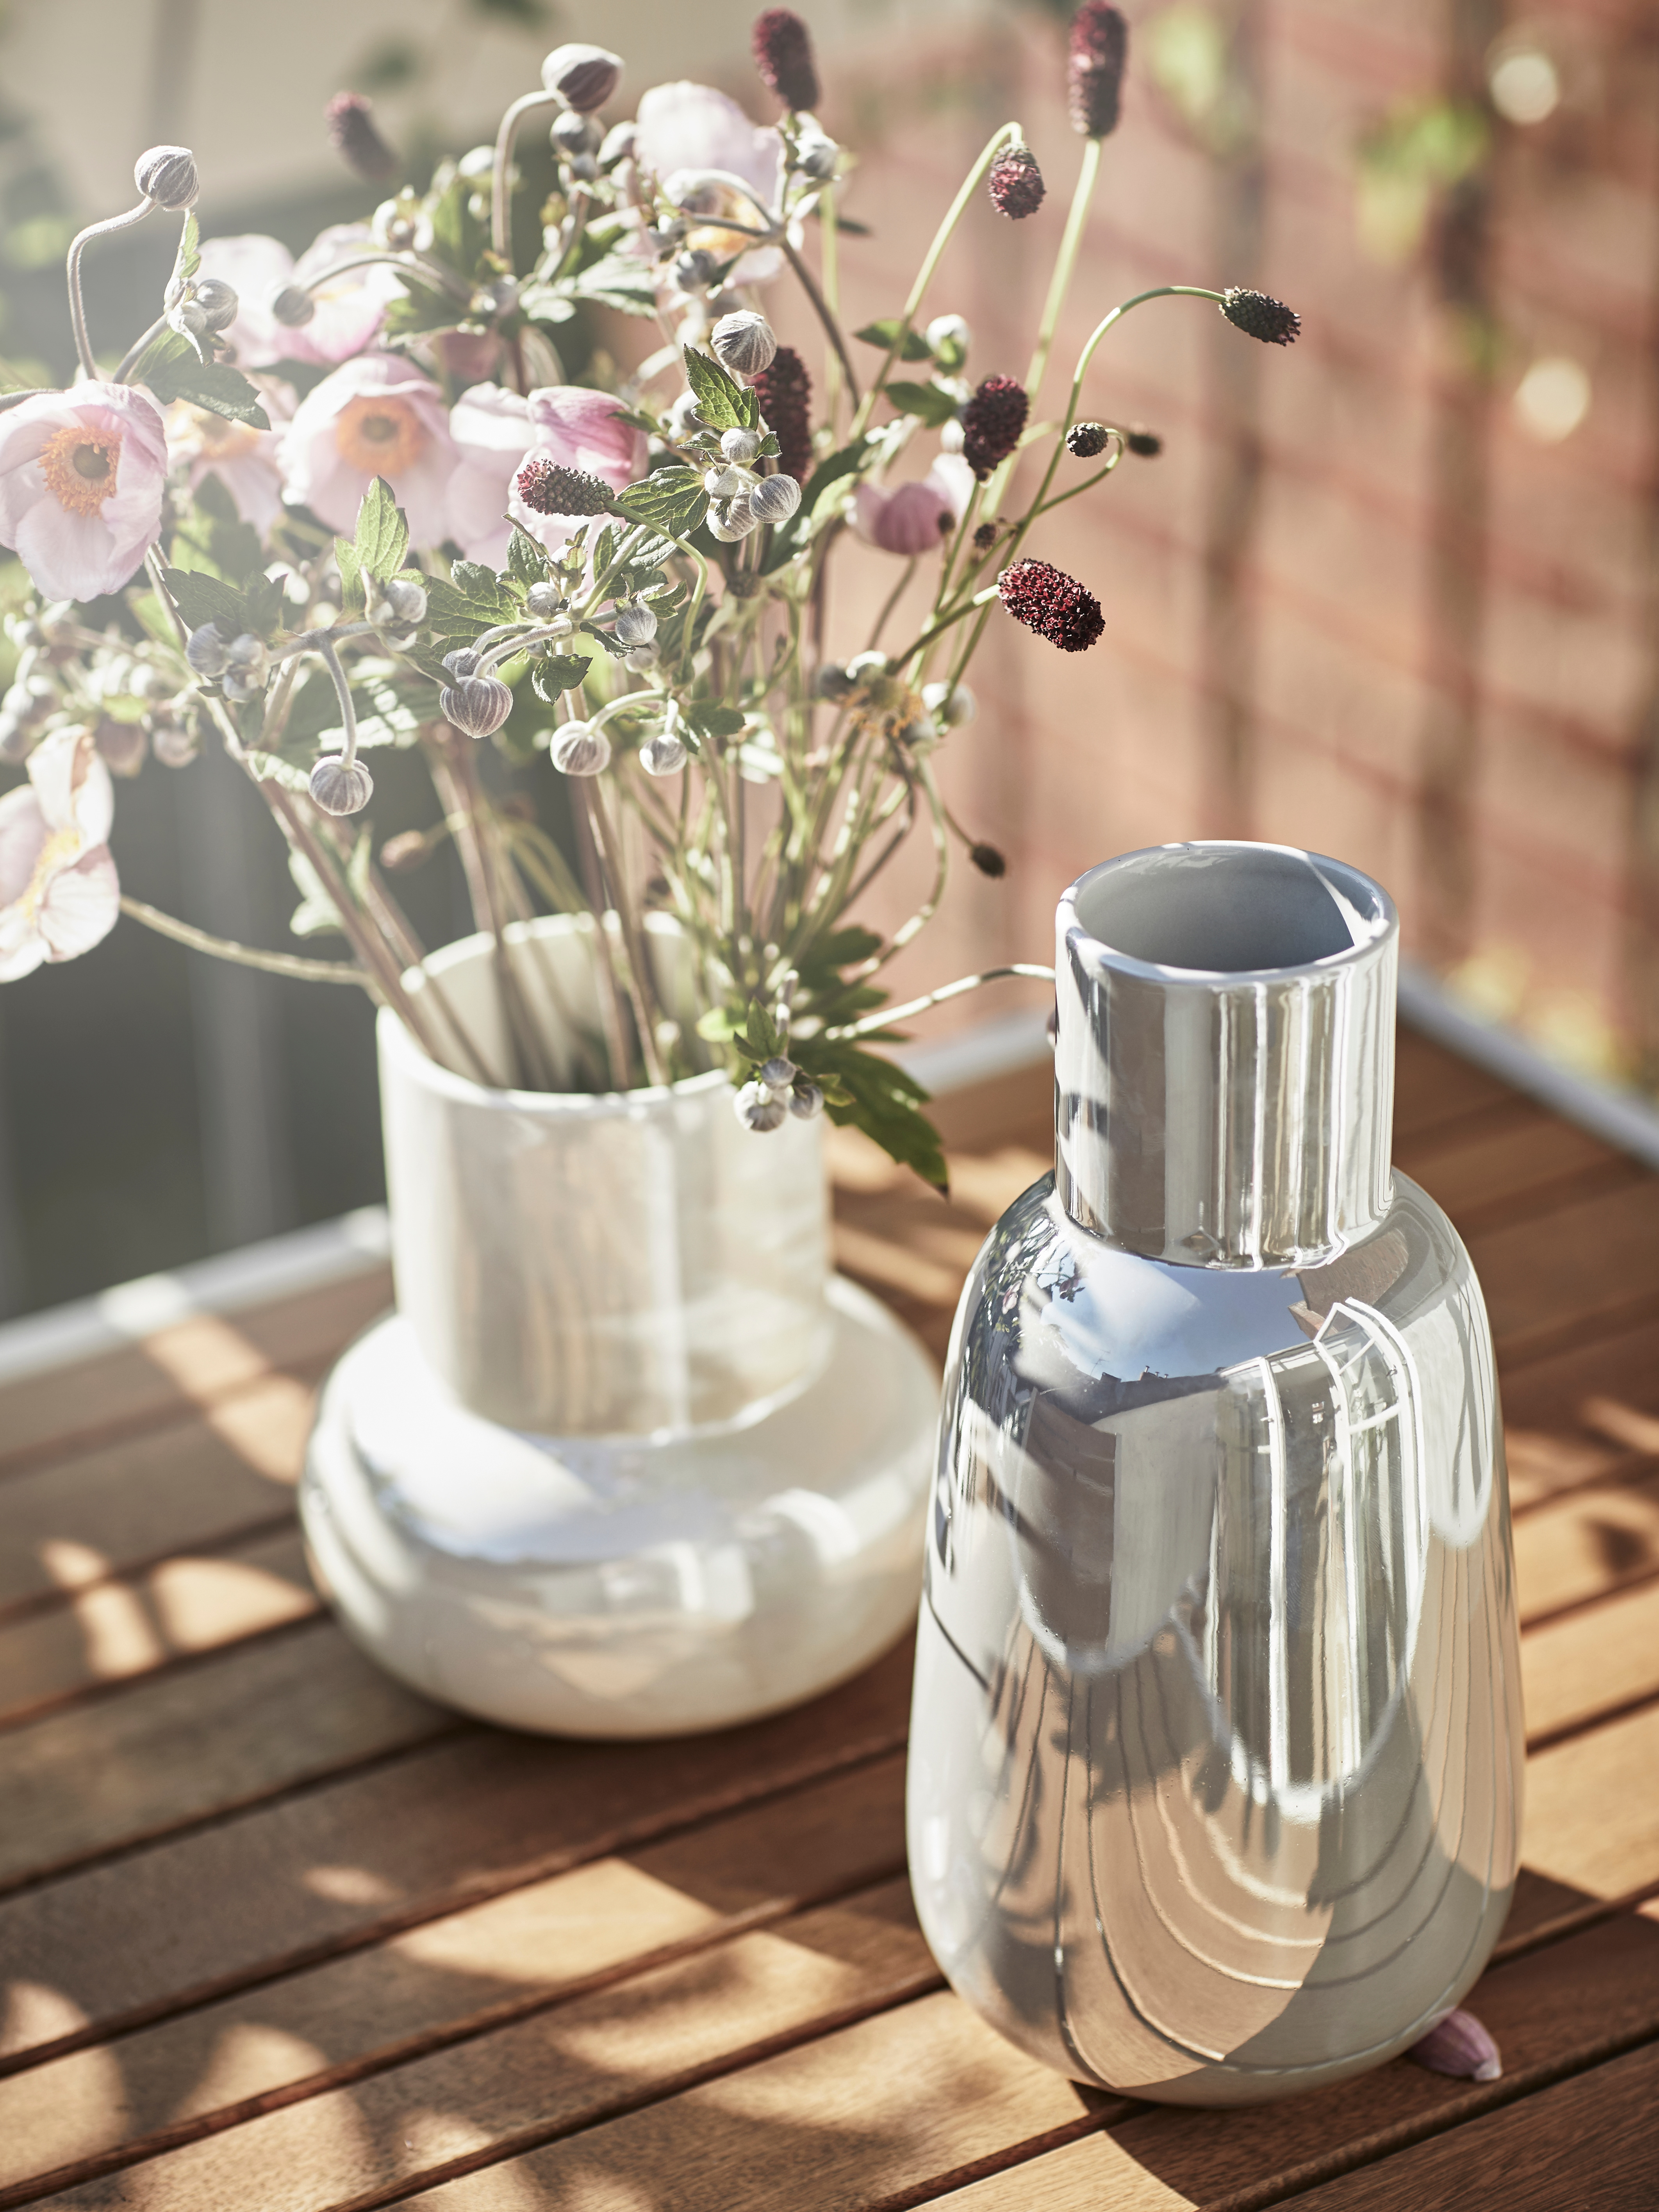 Close-up of a wooden table, displayed a FNITTRIG vase with flowers and an empty silver vase.